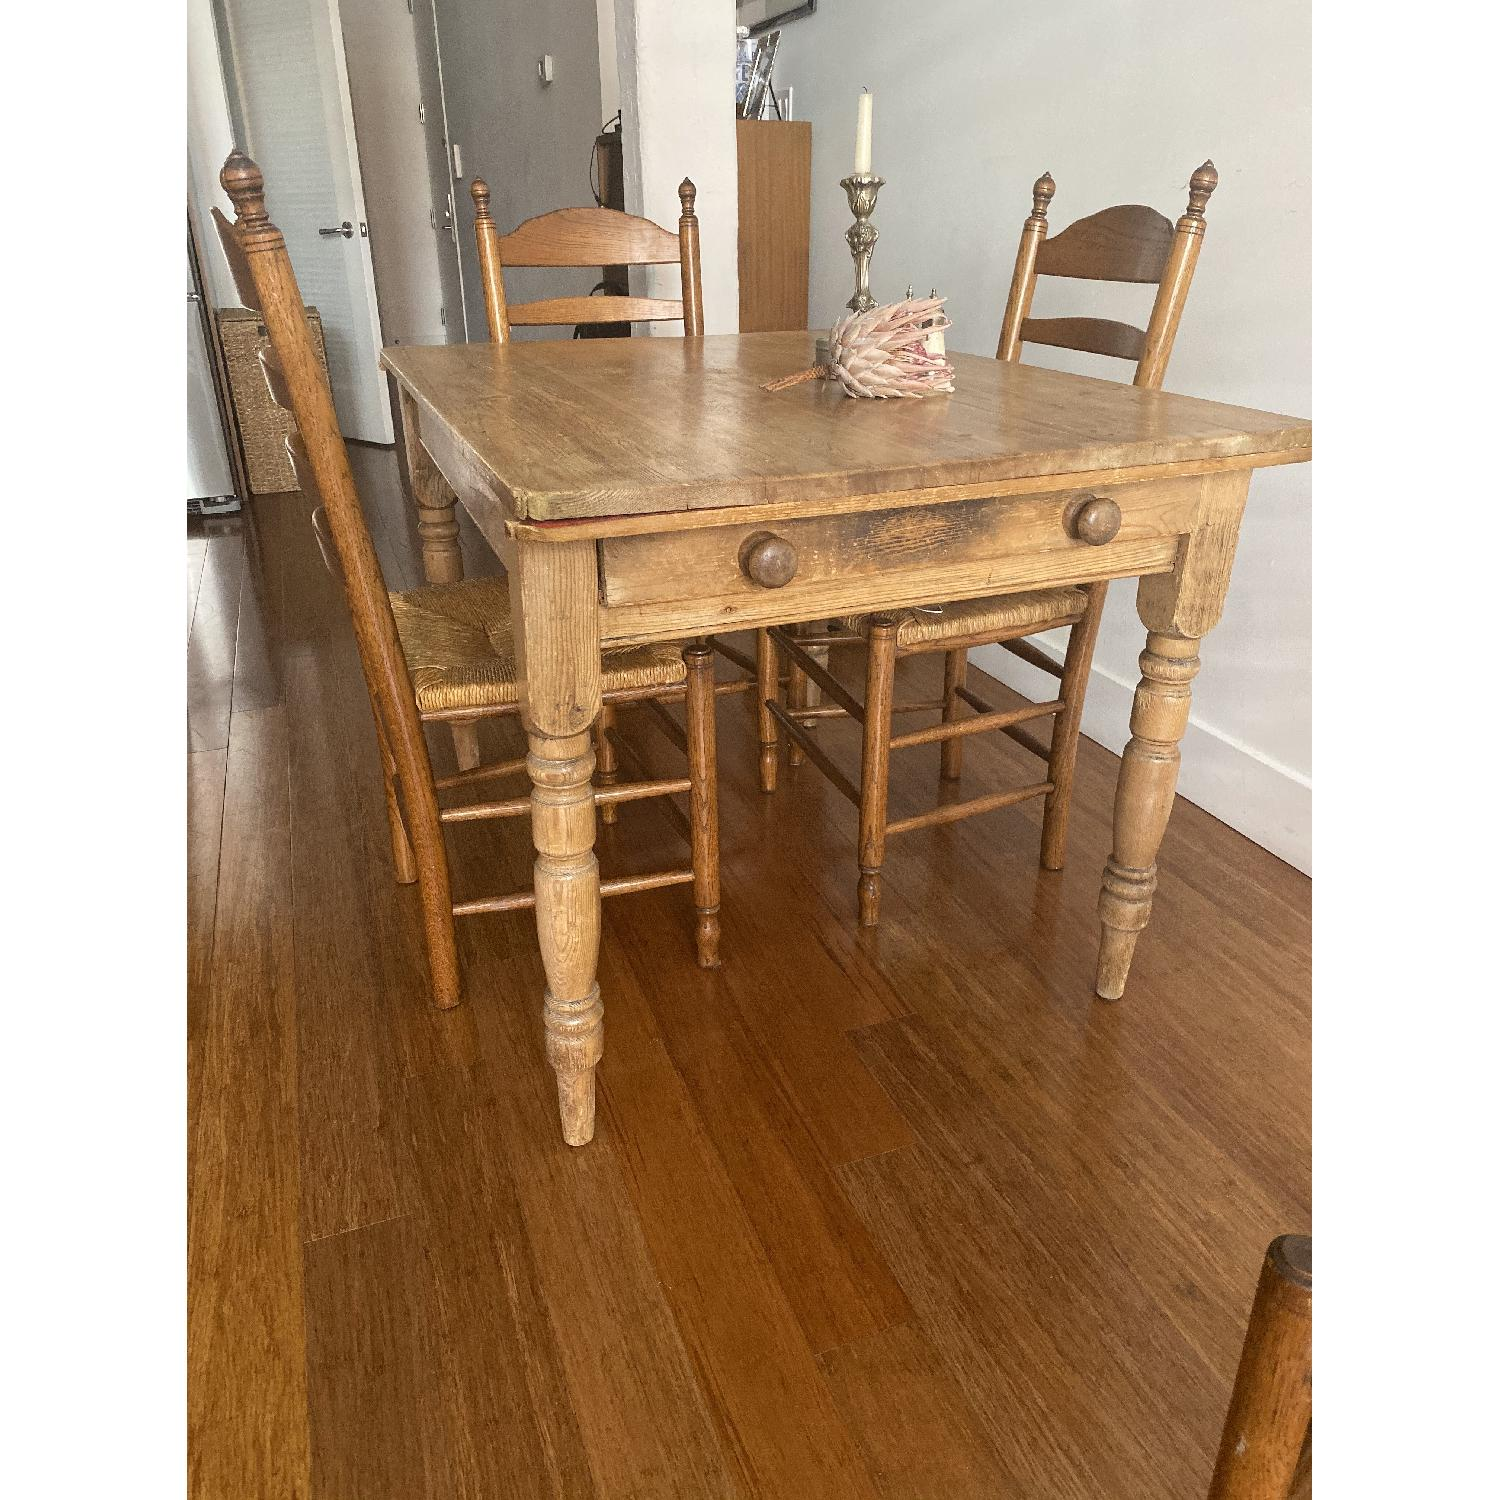 Antique Oak Wooden Dining Table w/ 4 Chairs - image-1